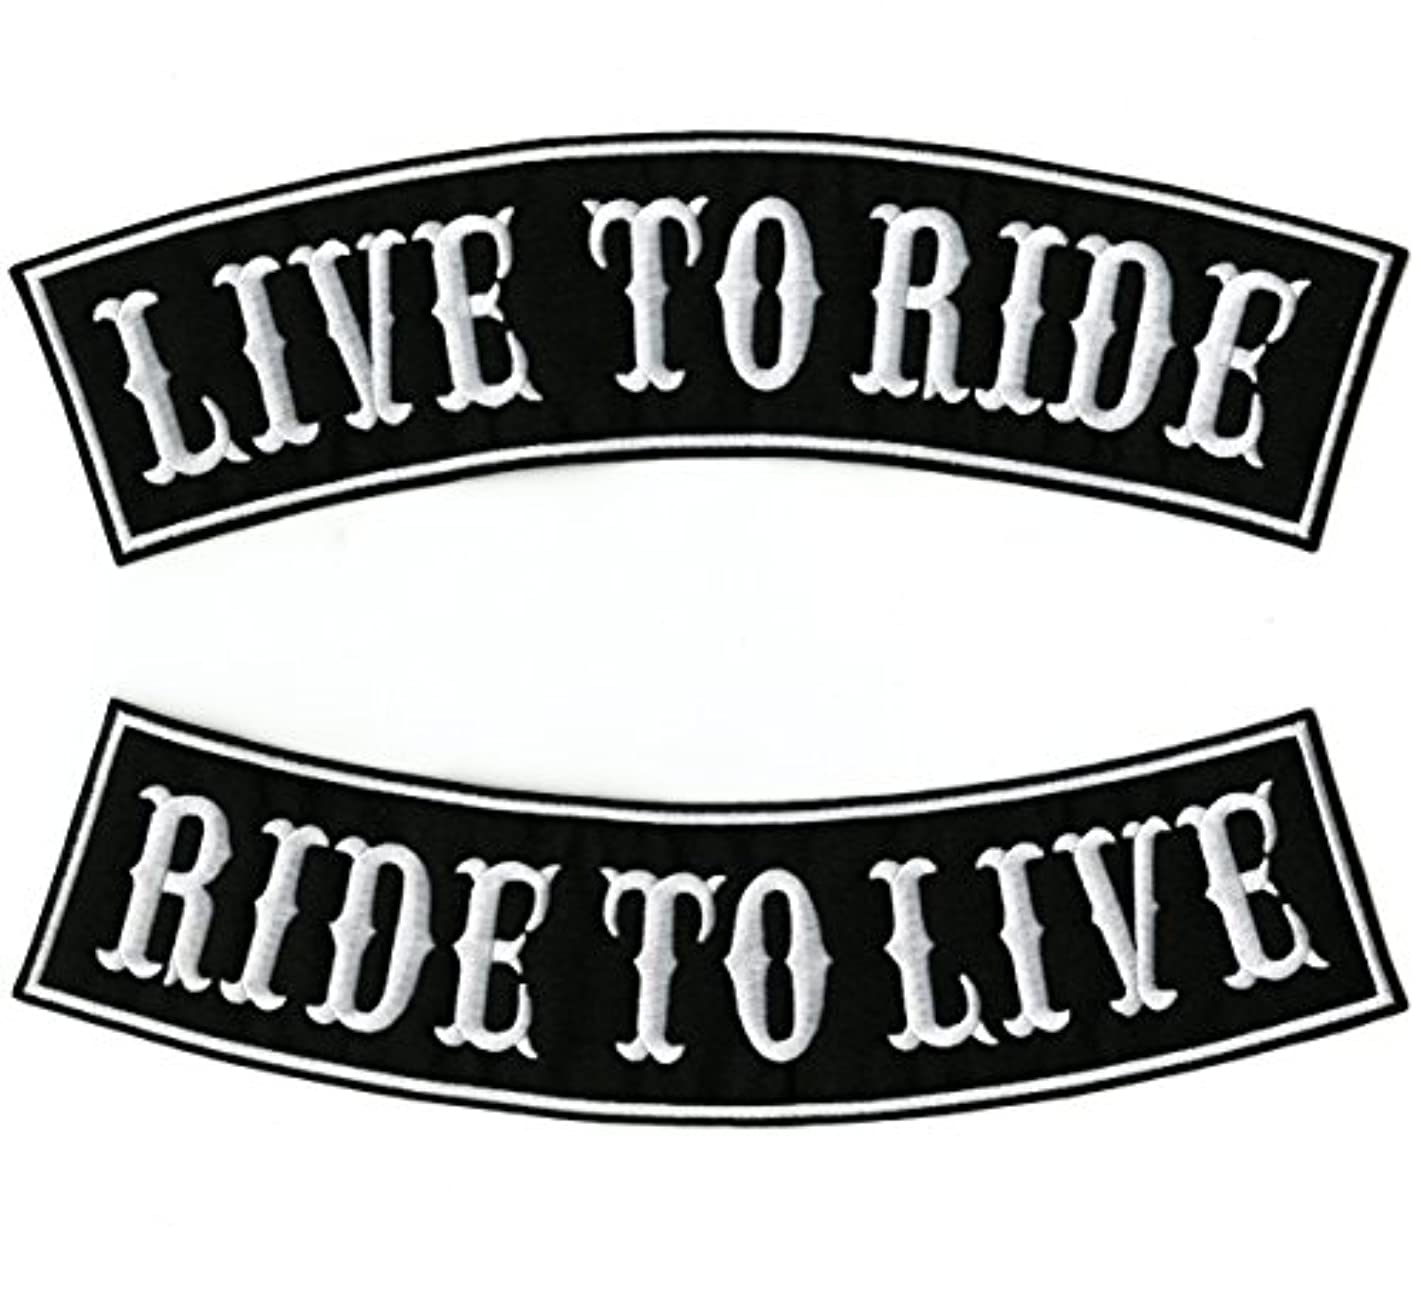 Live to Ride, Ride to Live Rocker Patches | Large Biker Motorcycle Embroidered Patch 2 pc. Set - by Nixon Thread Co. (12